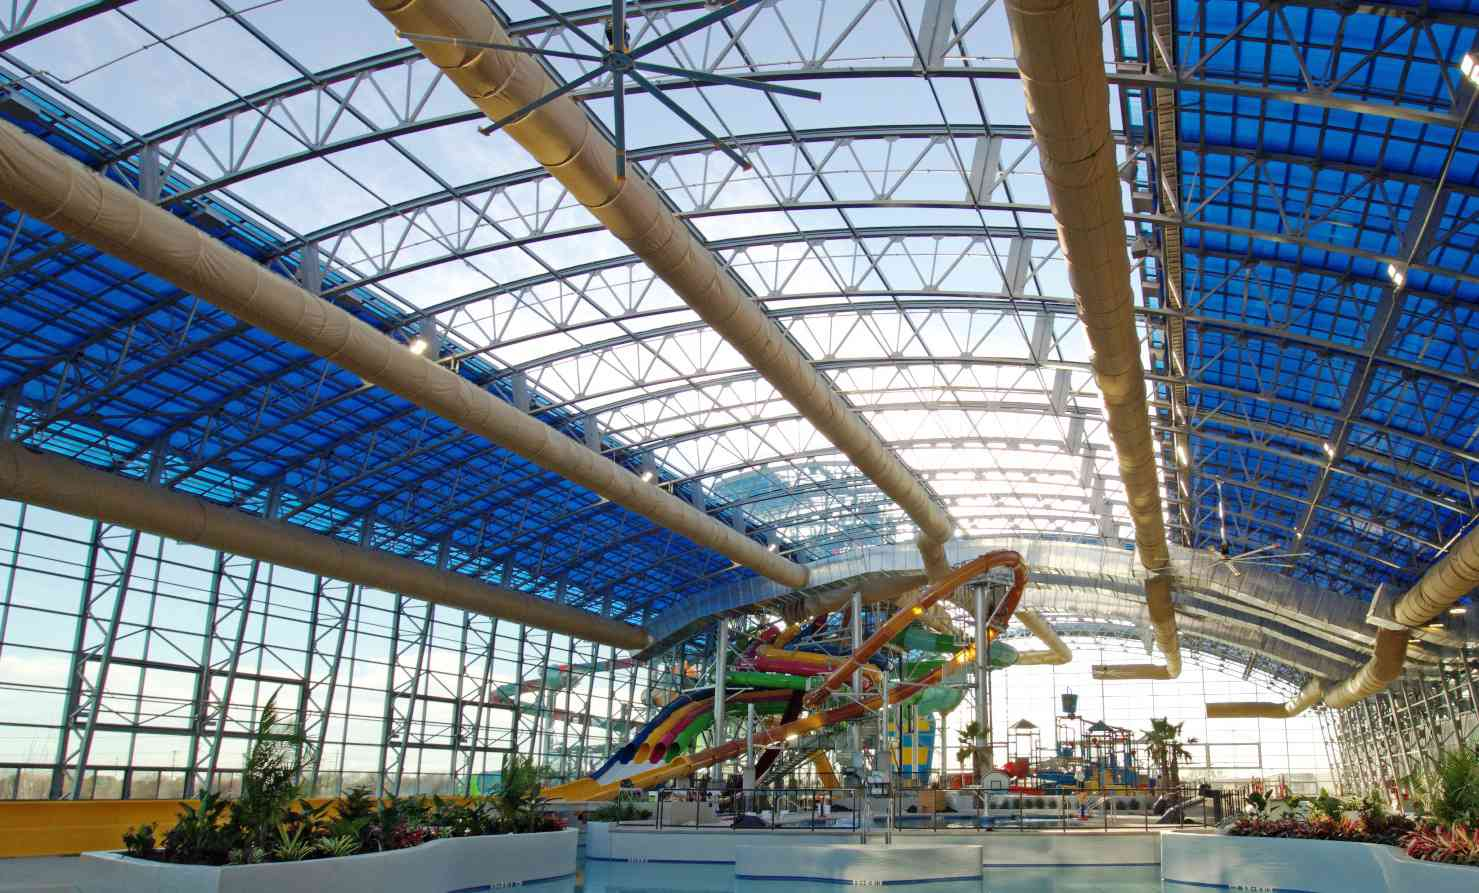 Openaire celebrates grand opening of epic waters indoor for Indoor pool with retractable roof